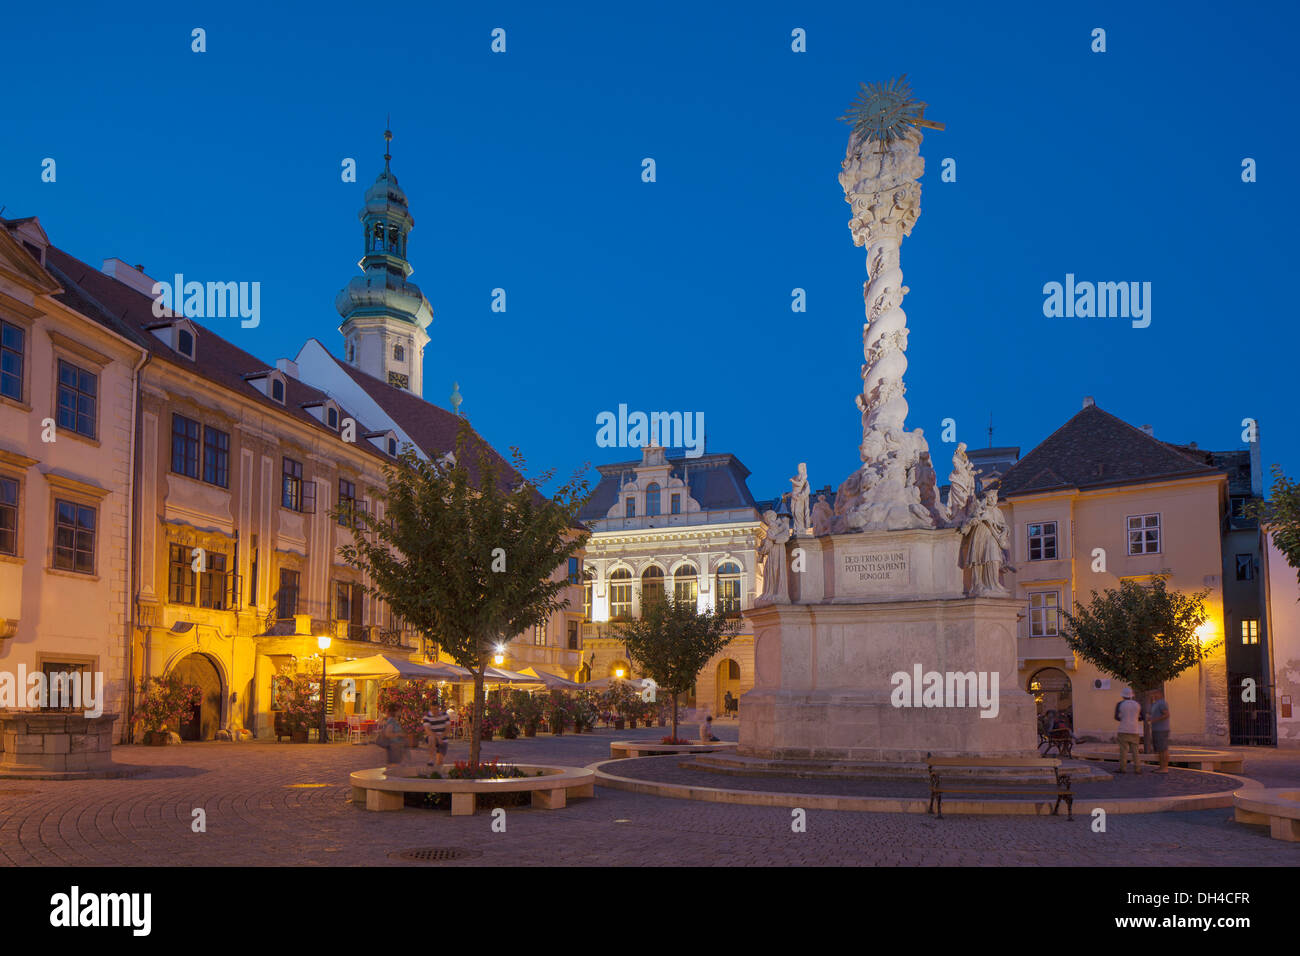 Firewatch Tower and Trinity Column in Main Square at dusk, Sopron, Western Transdanubia, Hungary - Stock Image